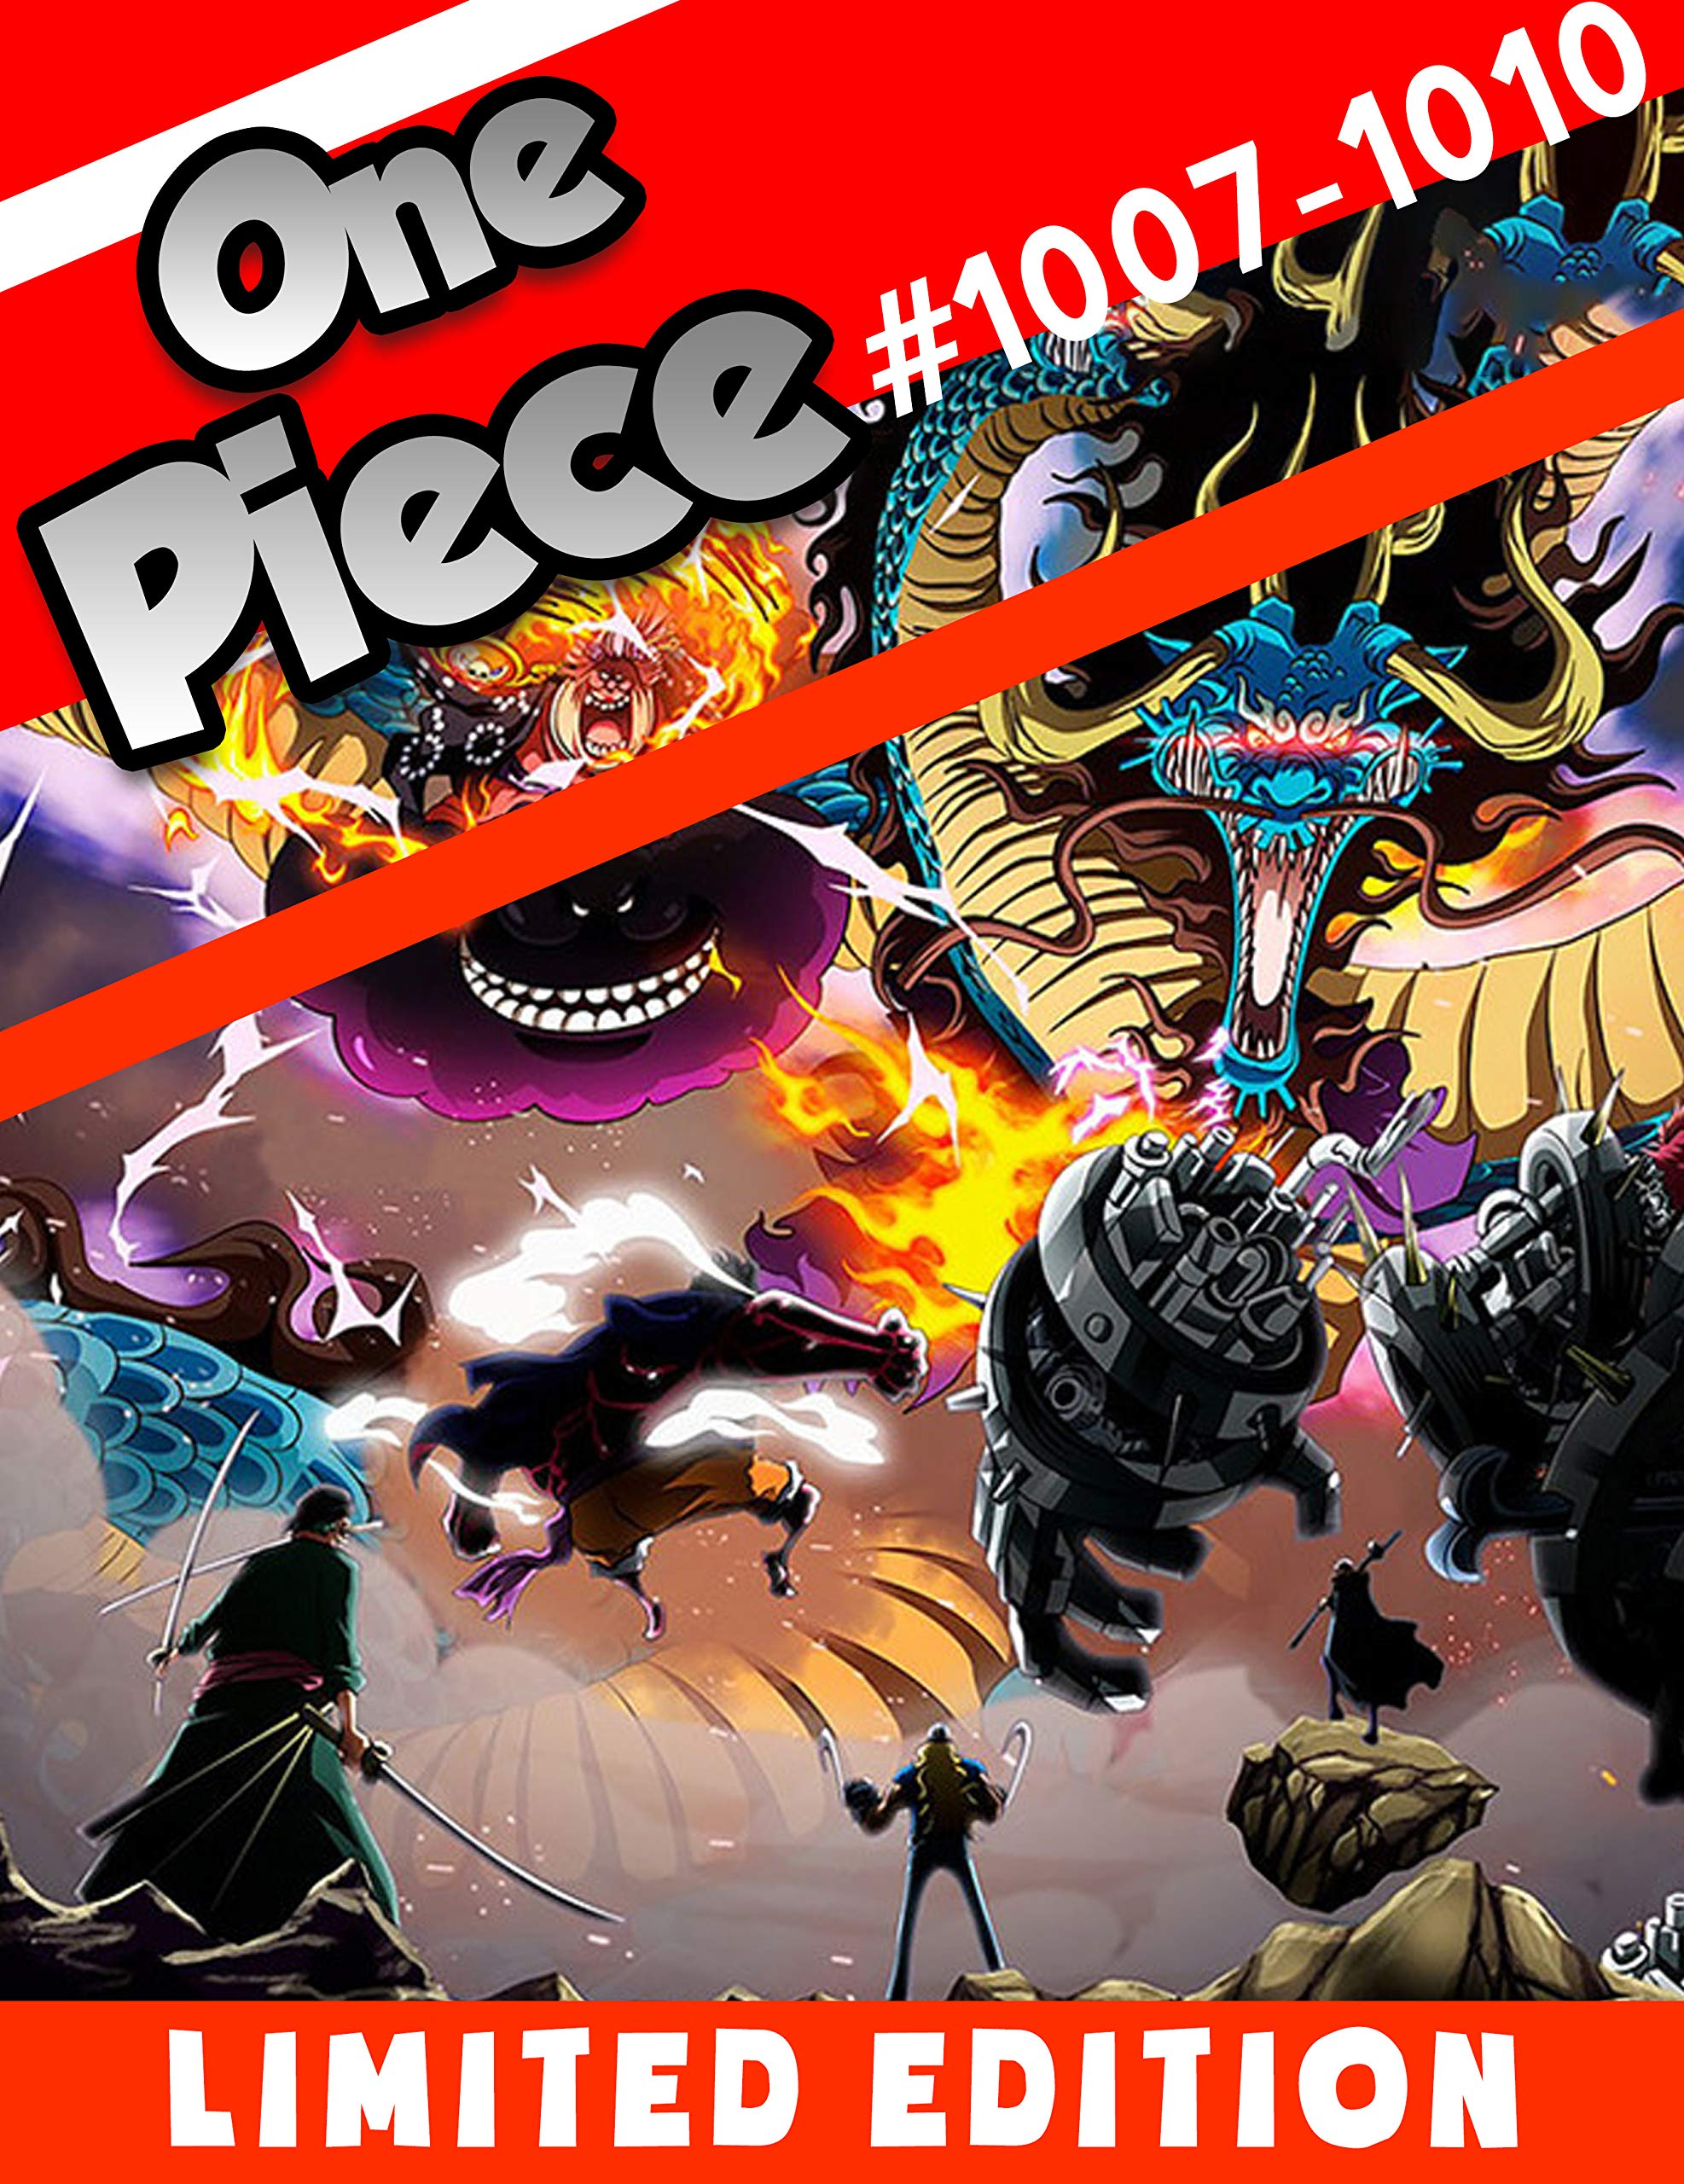 Fantasy Manga One Piece New Chapter: Chapter 1007-1010 Limited Edition